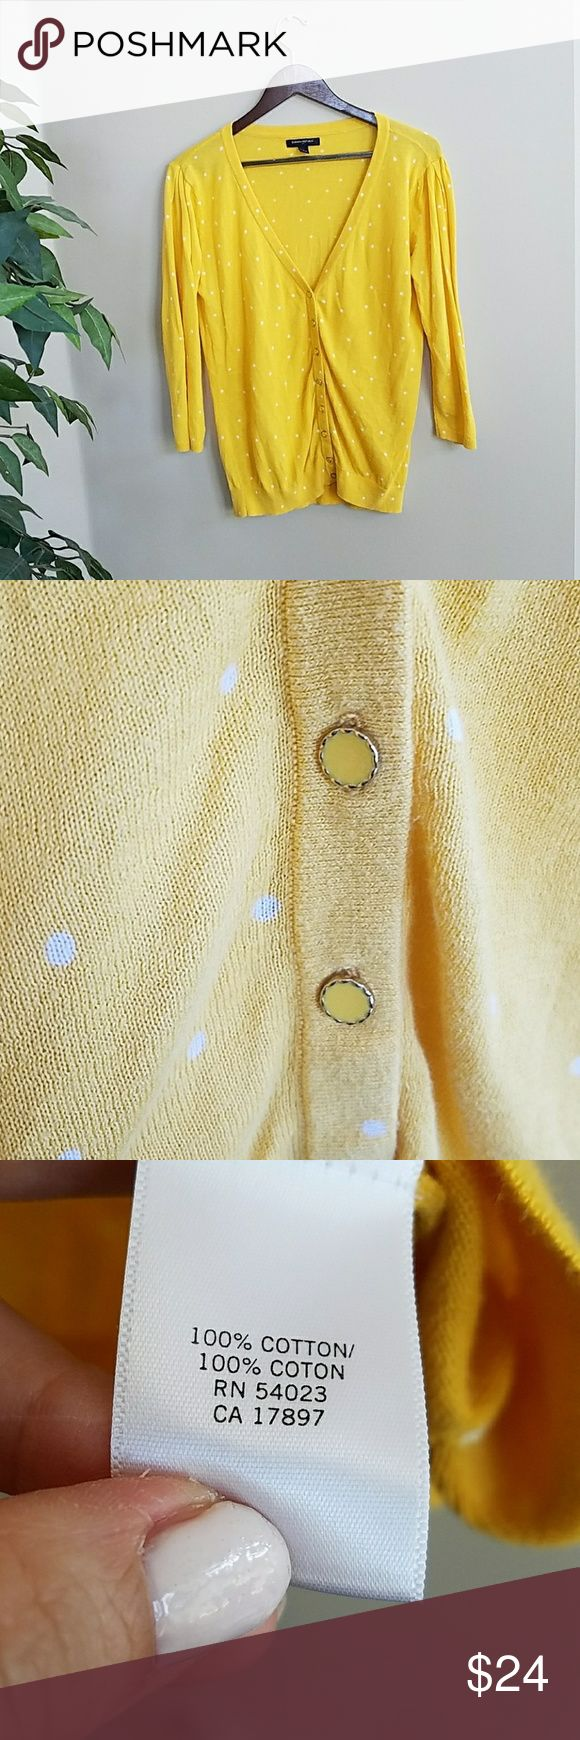 {Banana Republic Factory} Polka-Dot Cardigan Such a cute cardi for summer! Very lightweight and breezy. Lemon yellow w/ white dots. 3/4 sleeves. Cute fancy buttons. :-)  ** See pics for measurements | Offers welcome! | 20% off all bundles | NO TRADES | NO MODELING ** Banana Republic Sweaters Cardigans